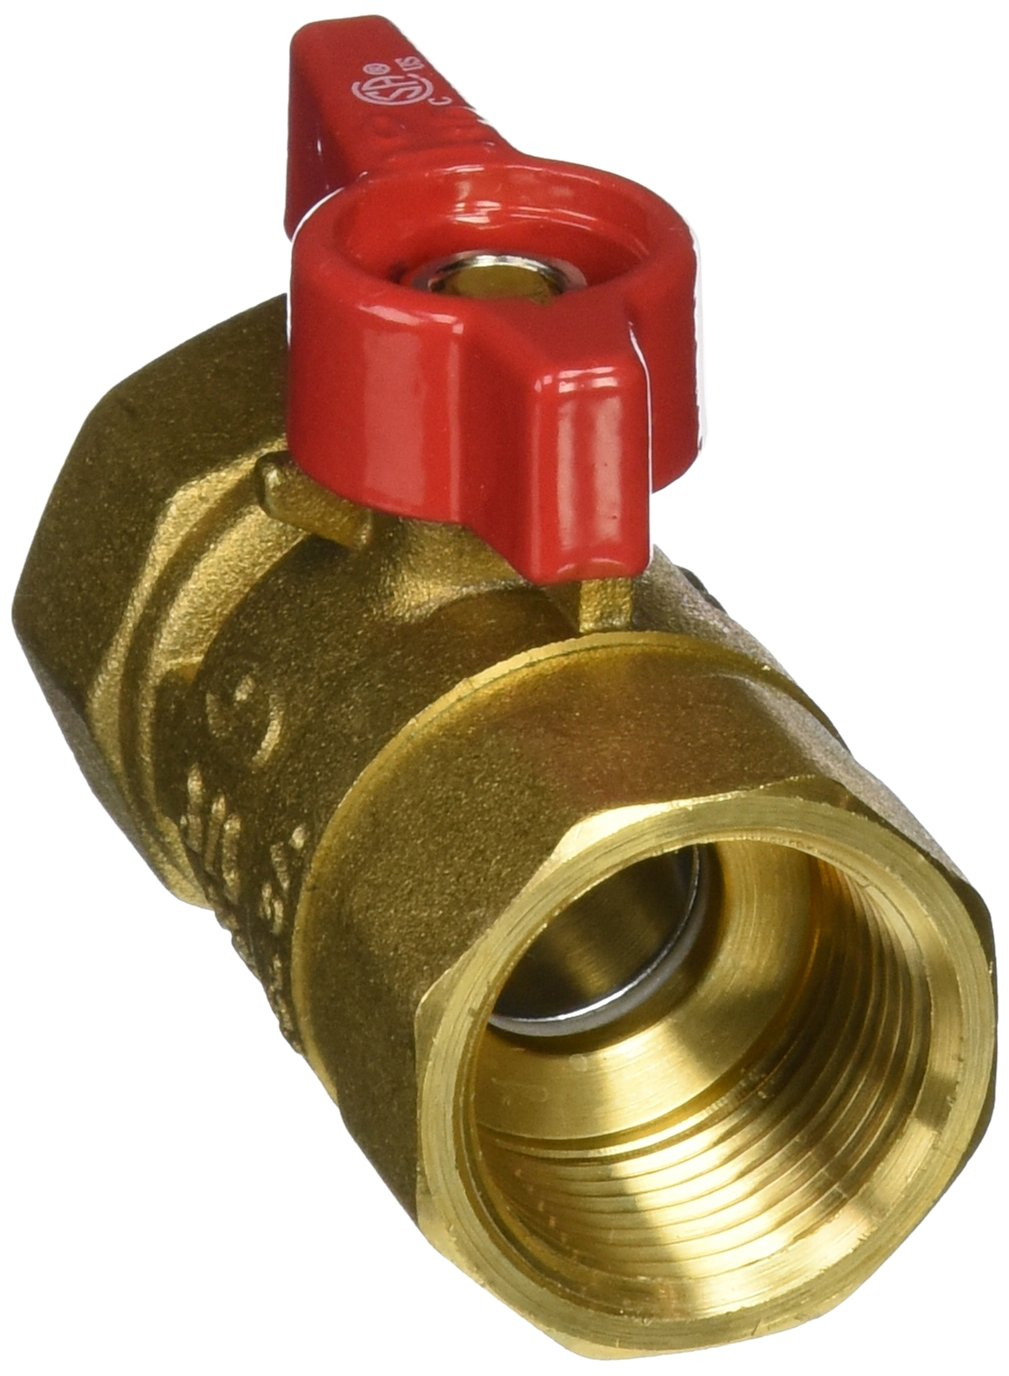 1//2-Inch FIP x 1//2-Inch FIP EZ-FLO CSA-Approved Eastman 60009 Brass Female Gas Ball Valve Connector with Quarter-Turn Lever Handle